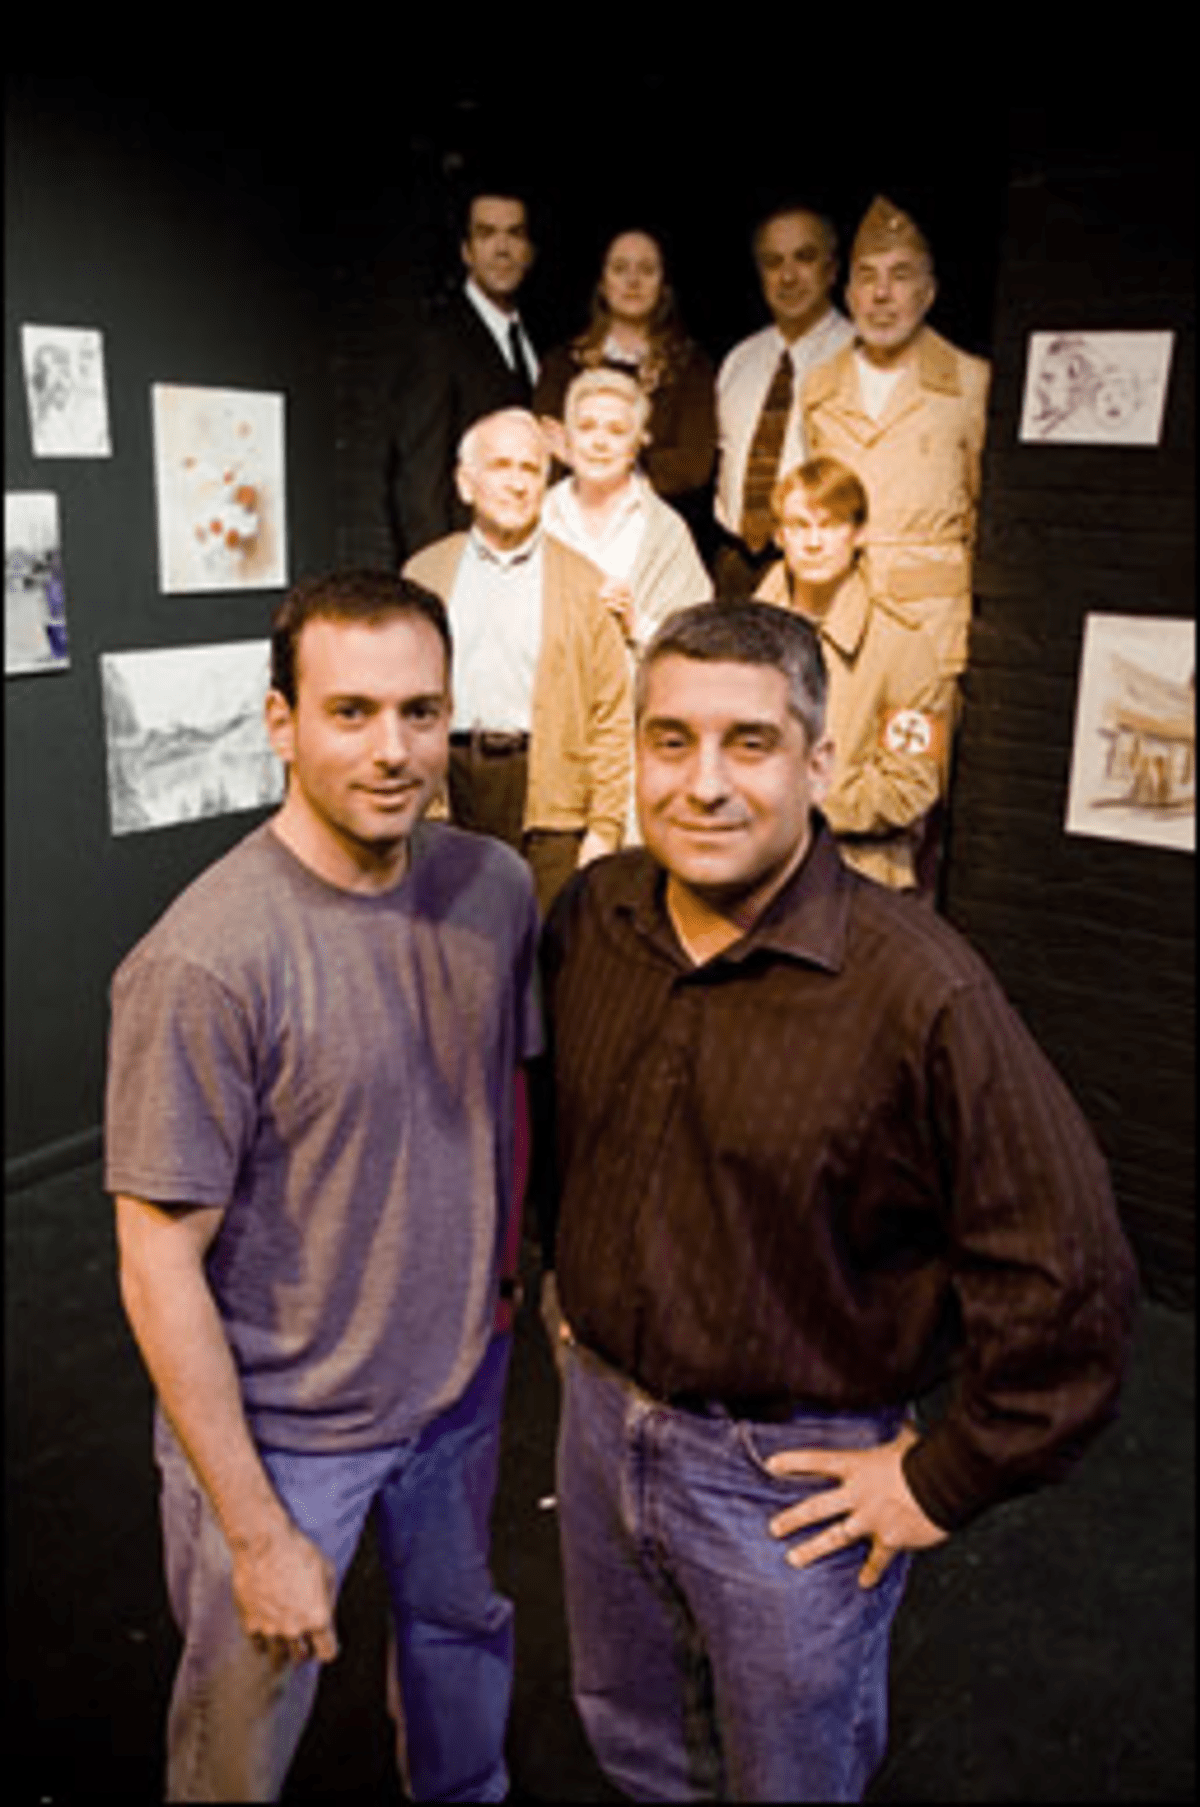 The 'Play's the Thing: Gottlieb and Walper's script finds new life.